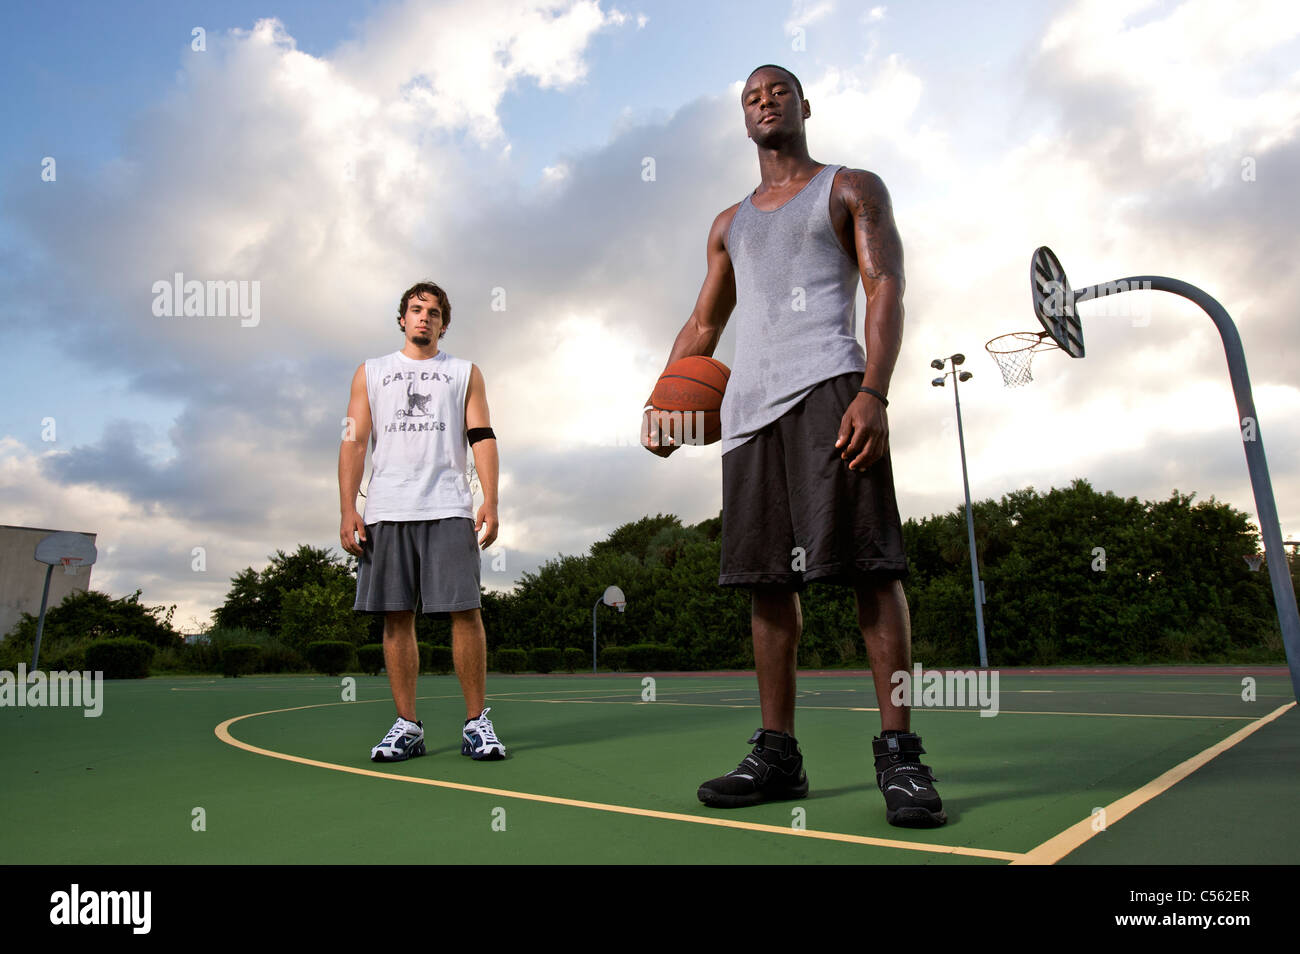 males after after playing basketball on outdoor court, dramatic sky - Stock Image